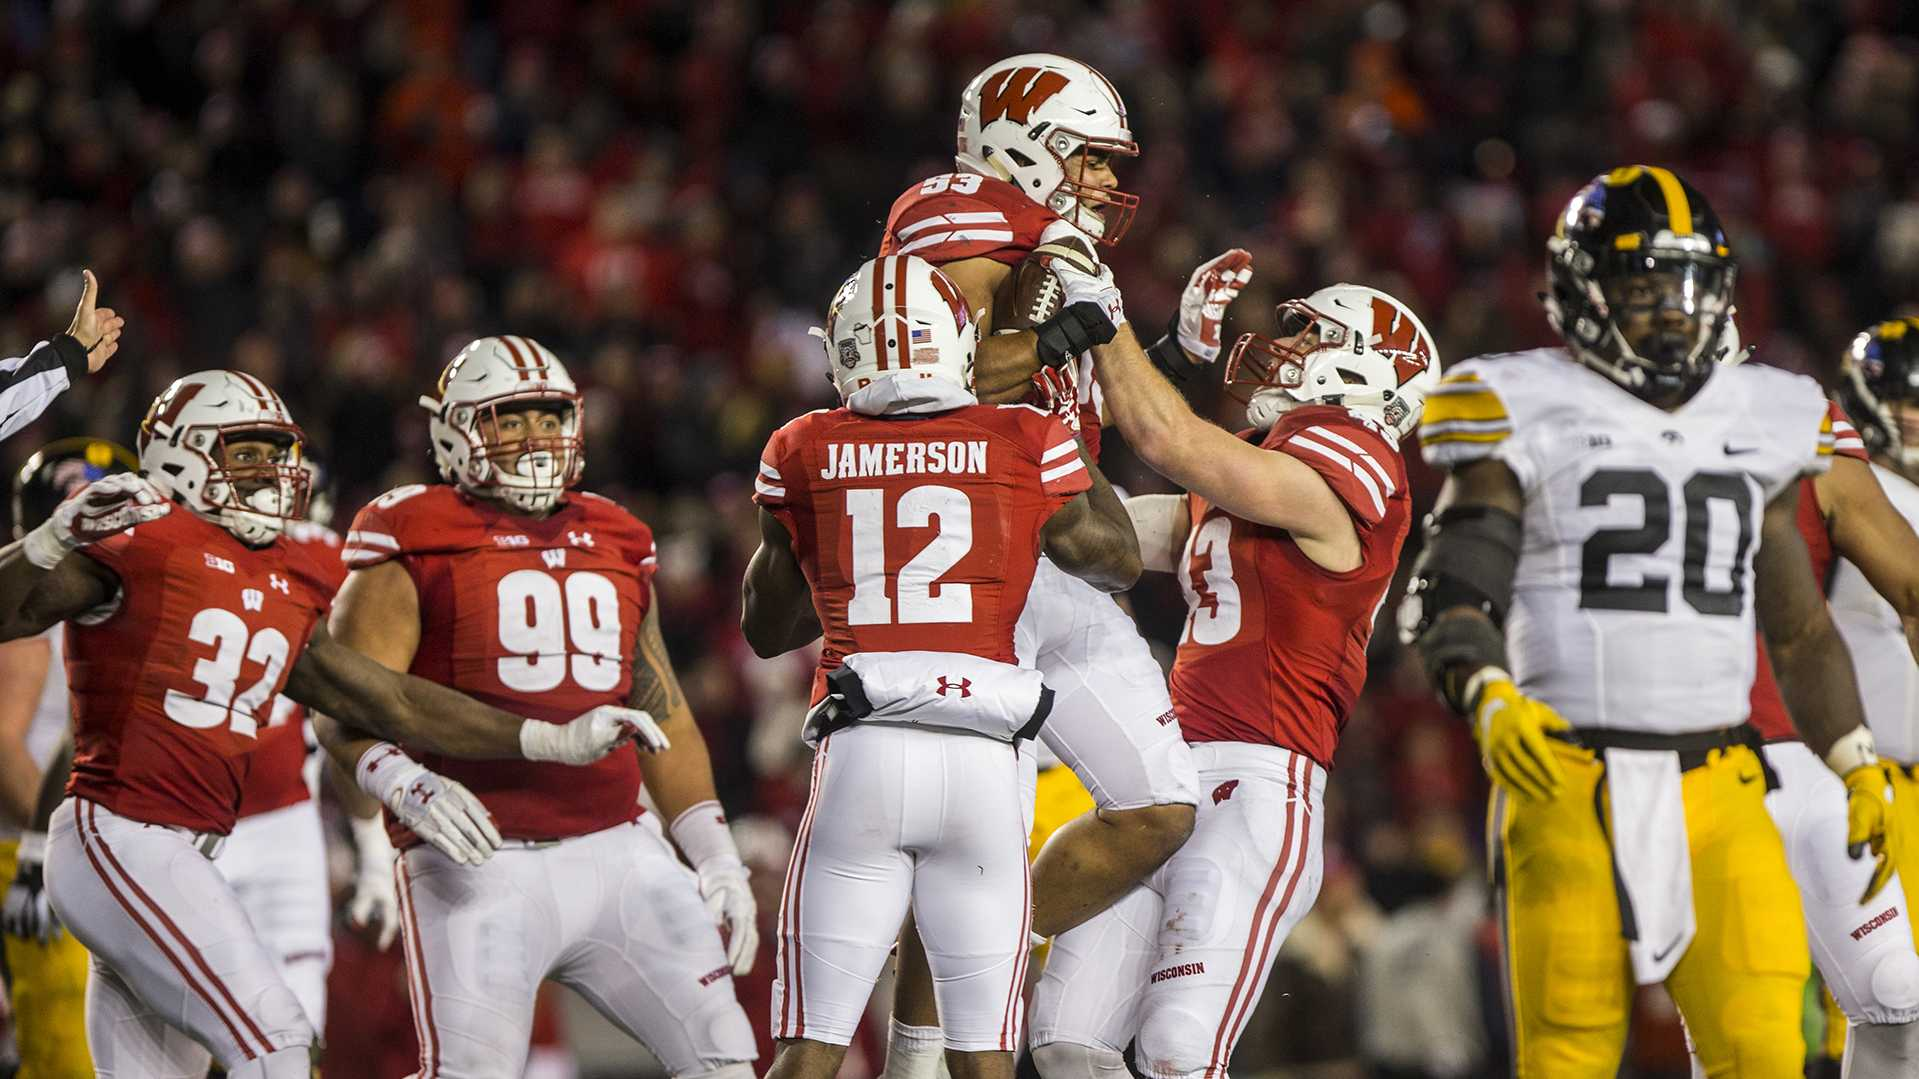 Iowa running back James Butler walks off the field as Wisconsin players celebrate a turnover during Iowa's game against Wisconsin at Camp Randall Stadium in Madison, Wisconsin on Saturday, Nov. 11, 2017. The Badgers defeated the Hawkeyes 38-14. (Nick Rohlman/The Daily Iowan)